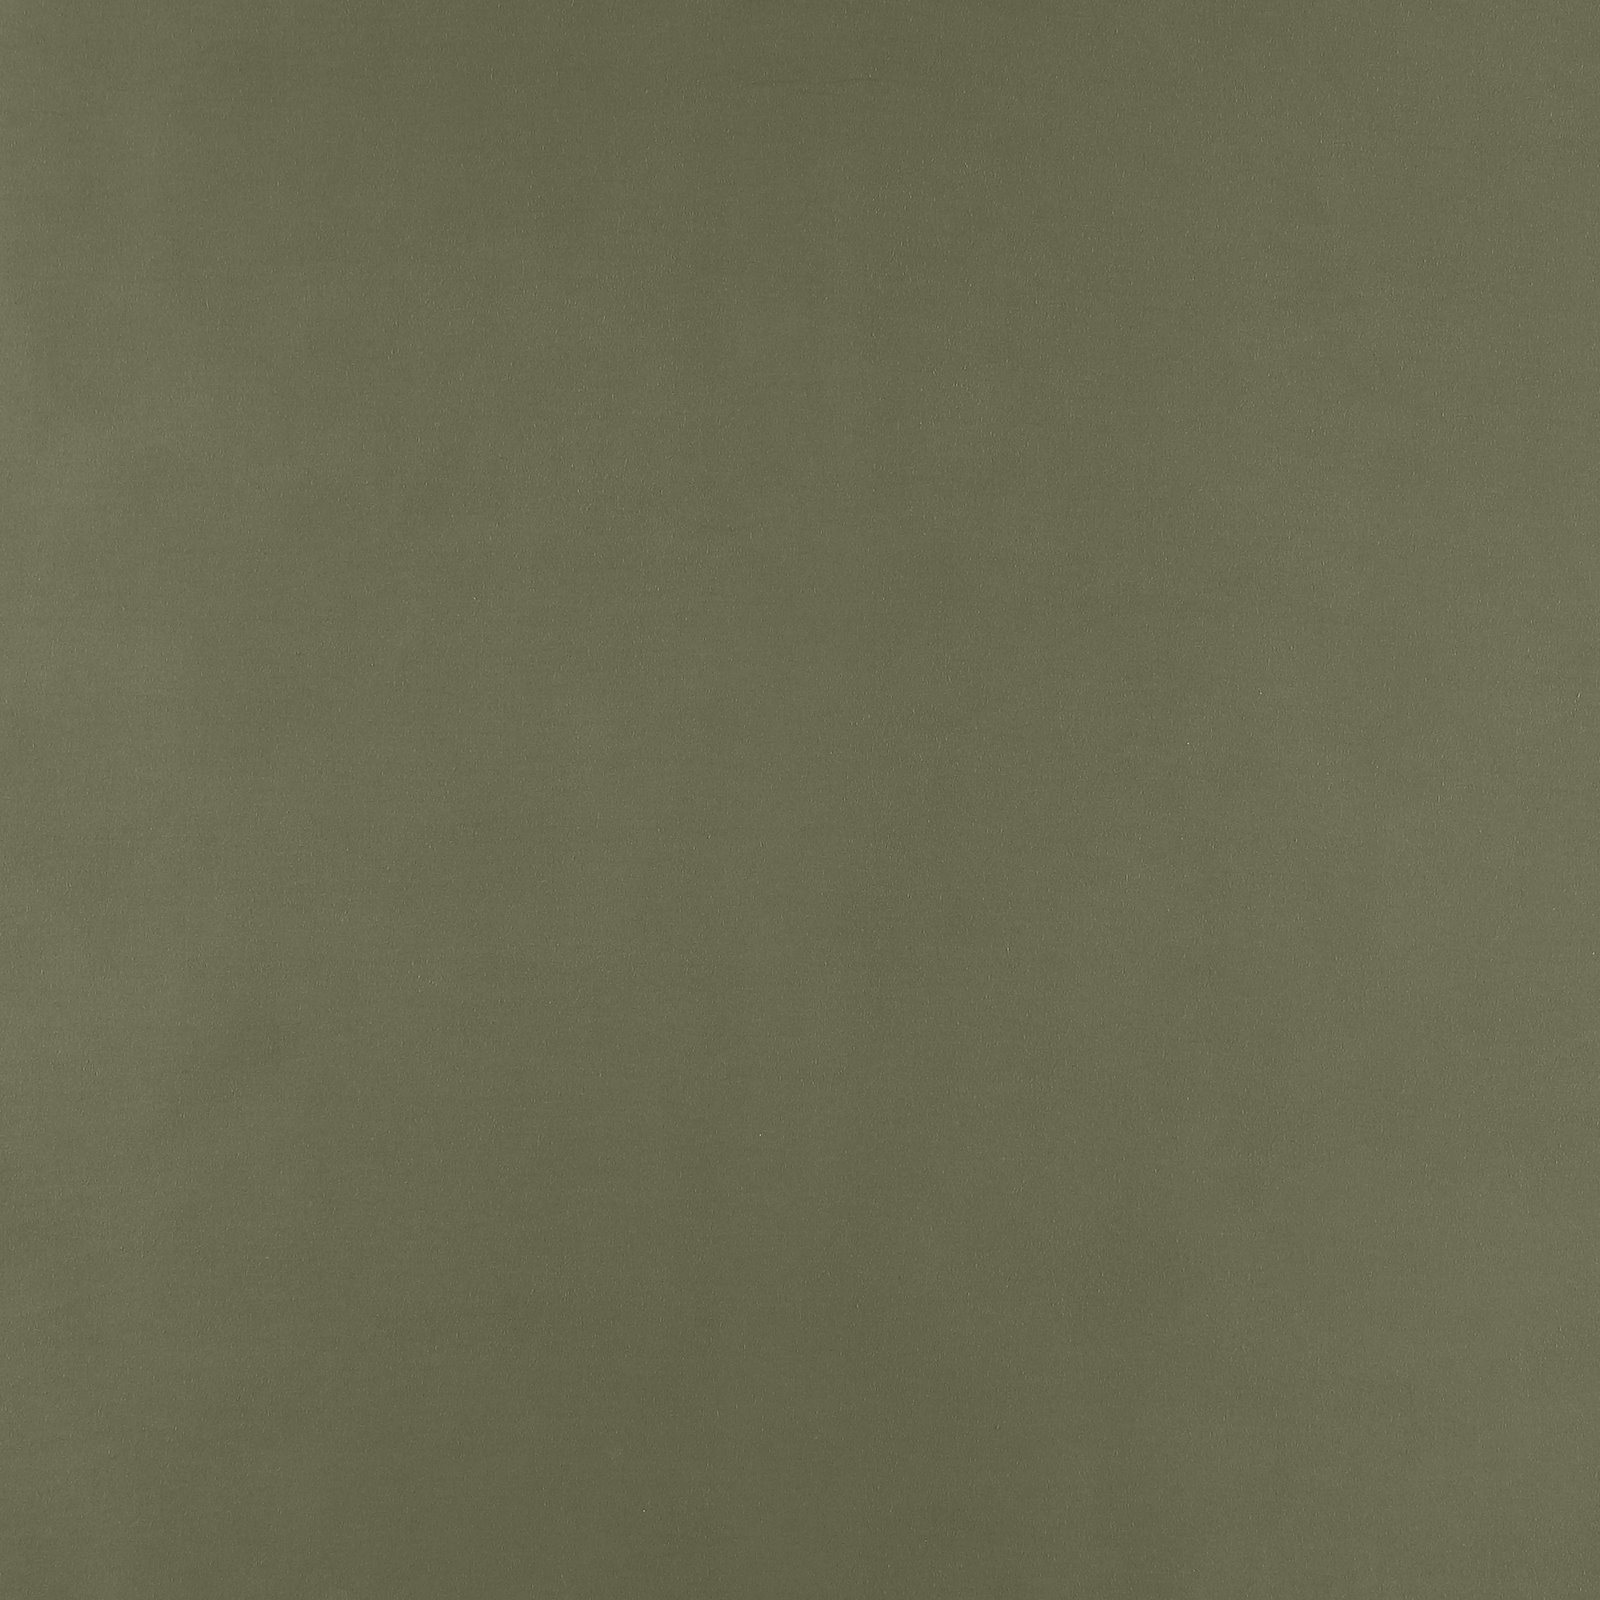 Viscose jersey army green 272786_pack_solid